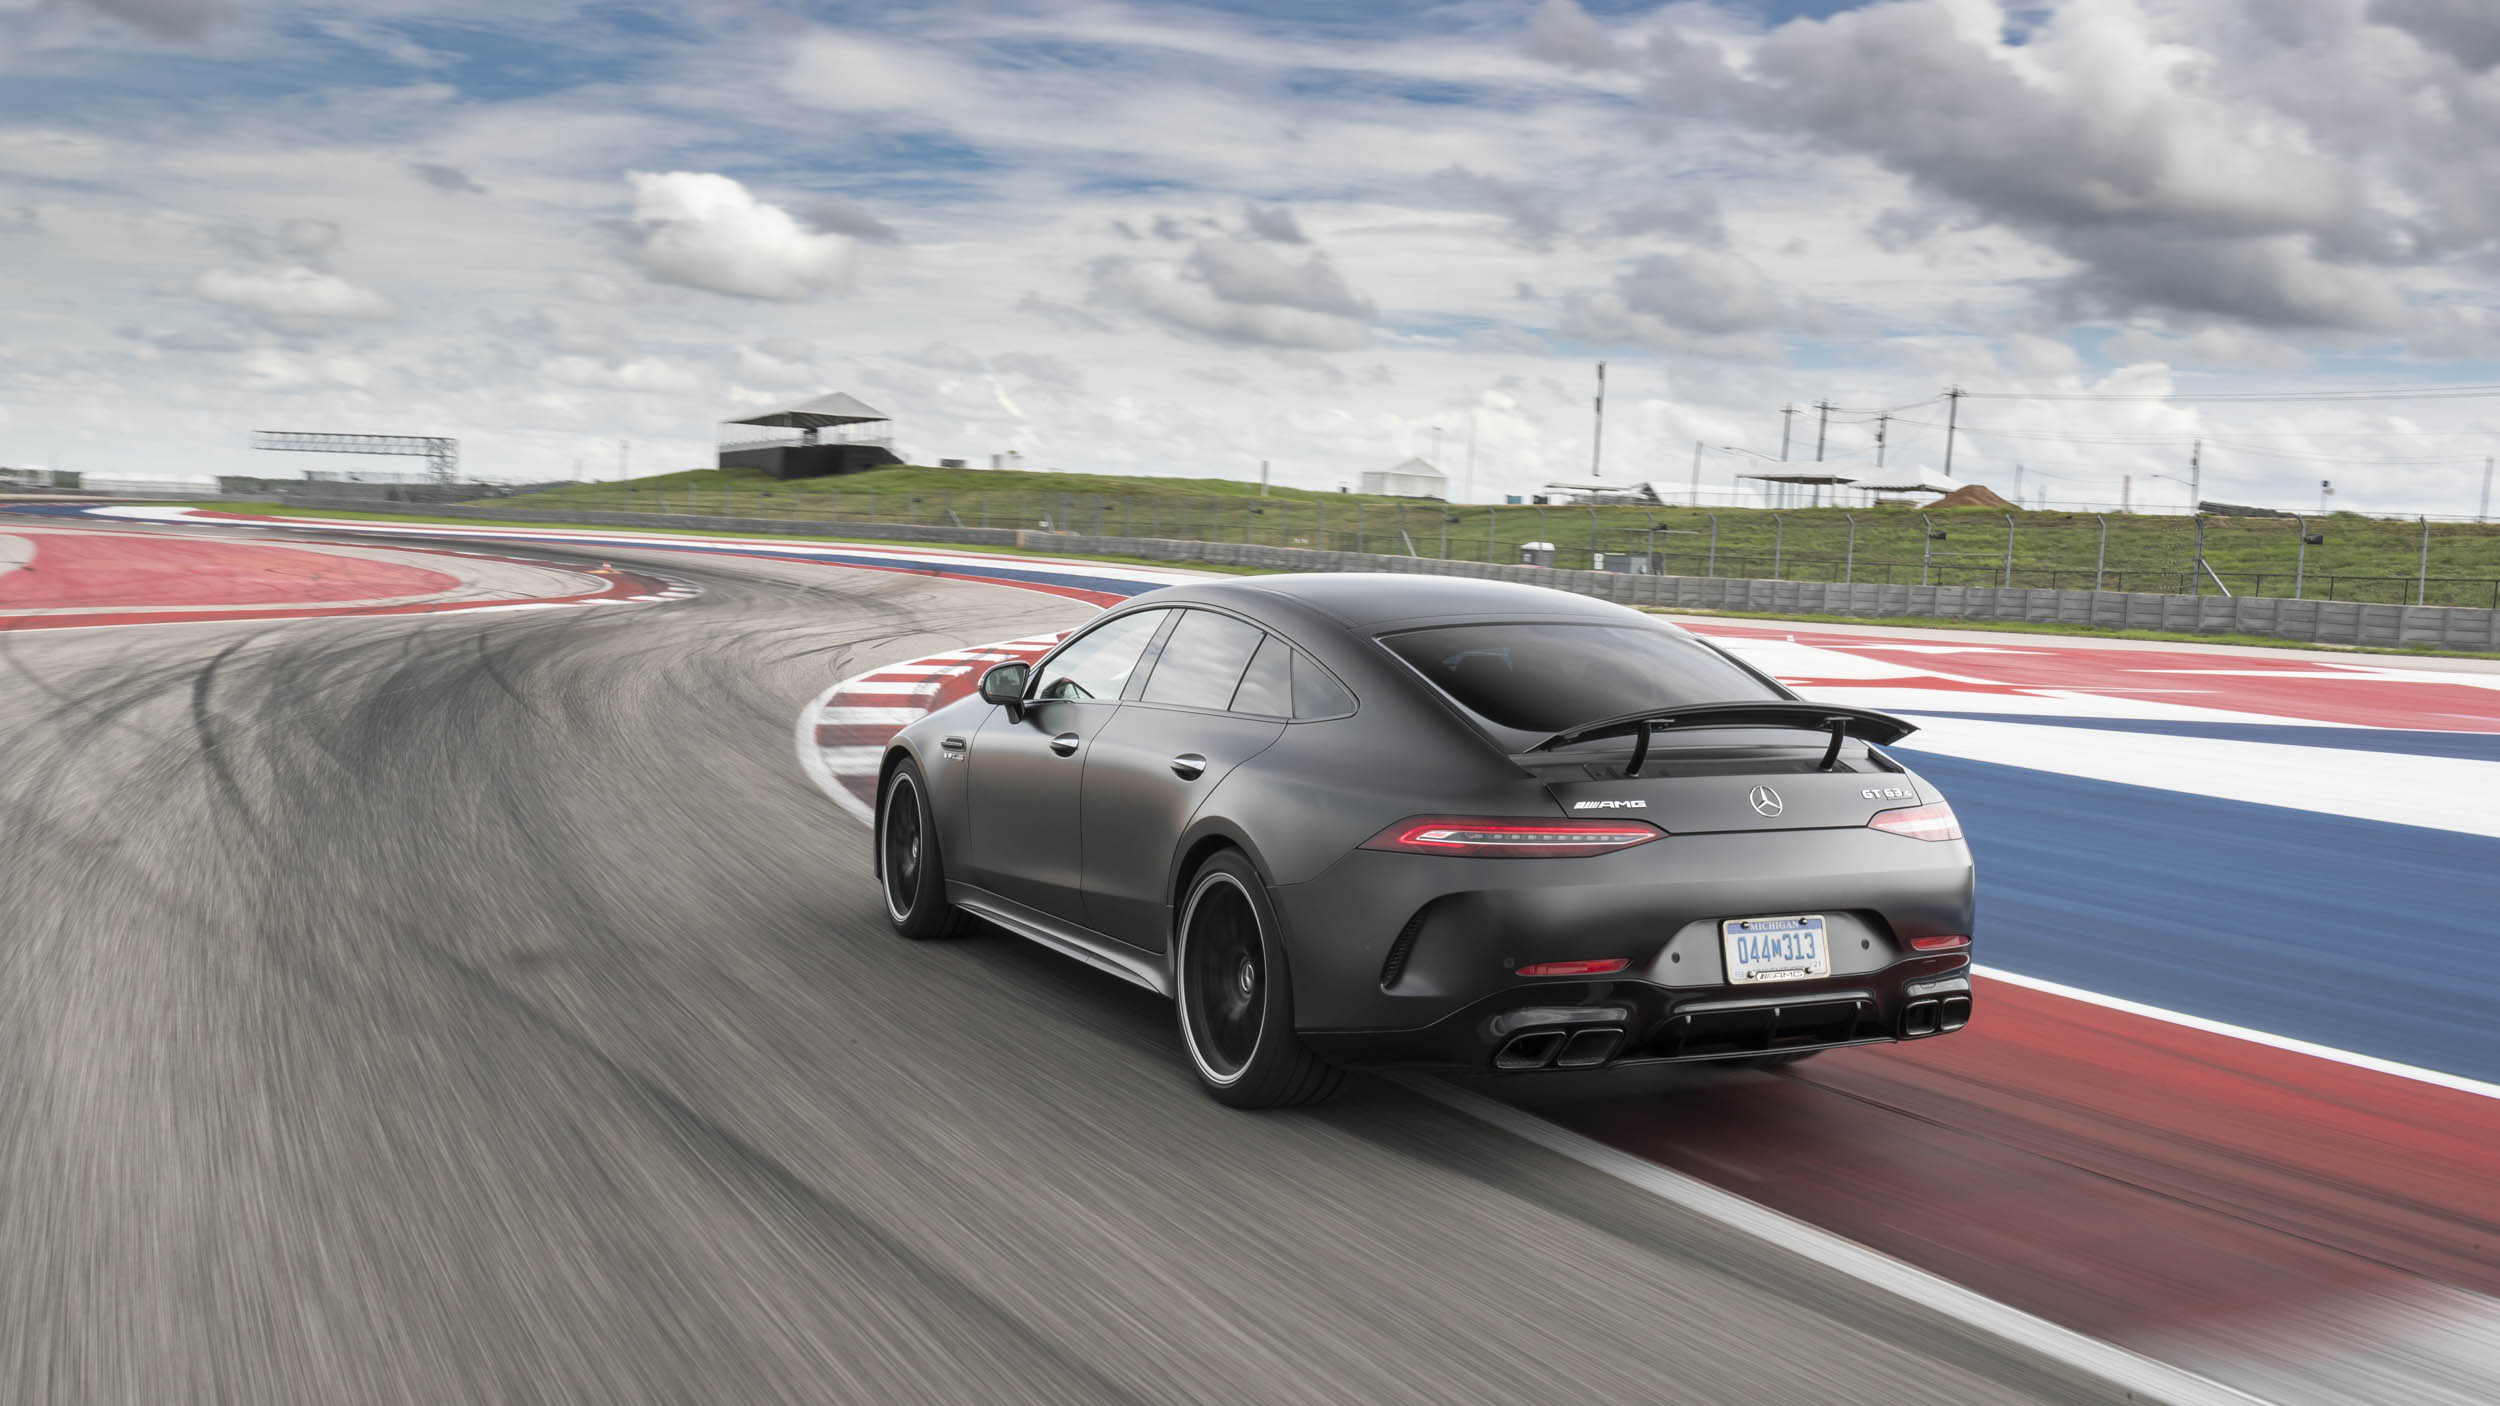 Mercedes-AMG GT 63 S rear 3/4 on the track